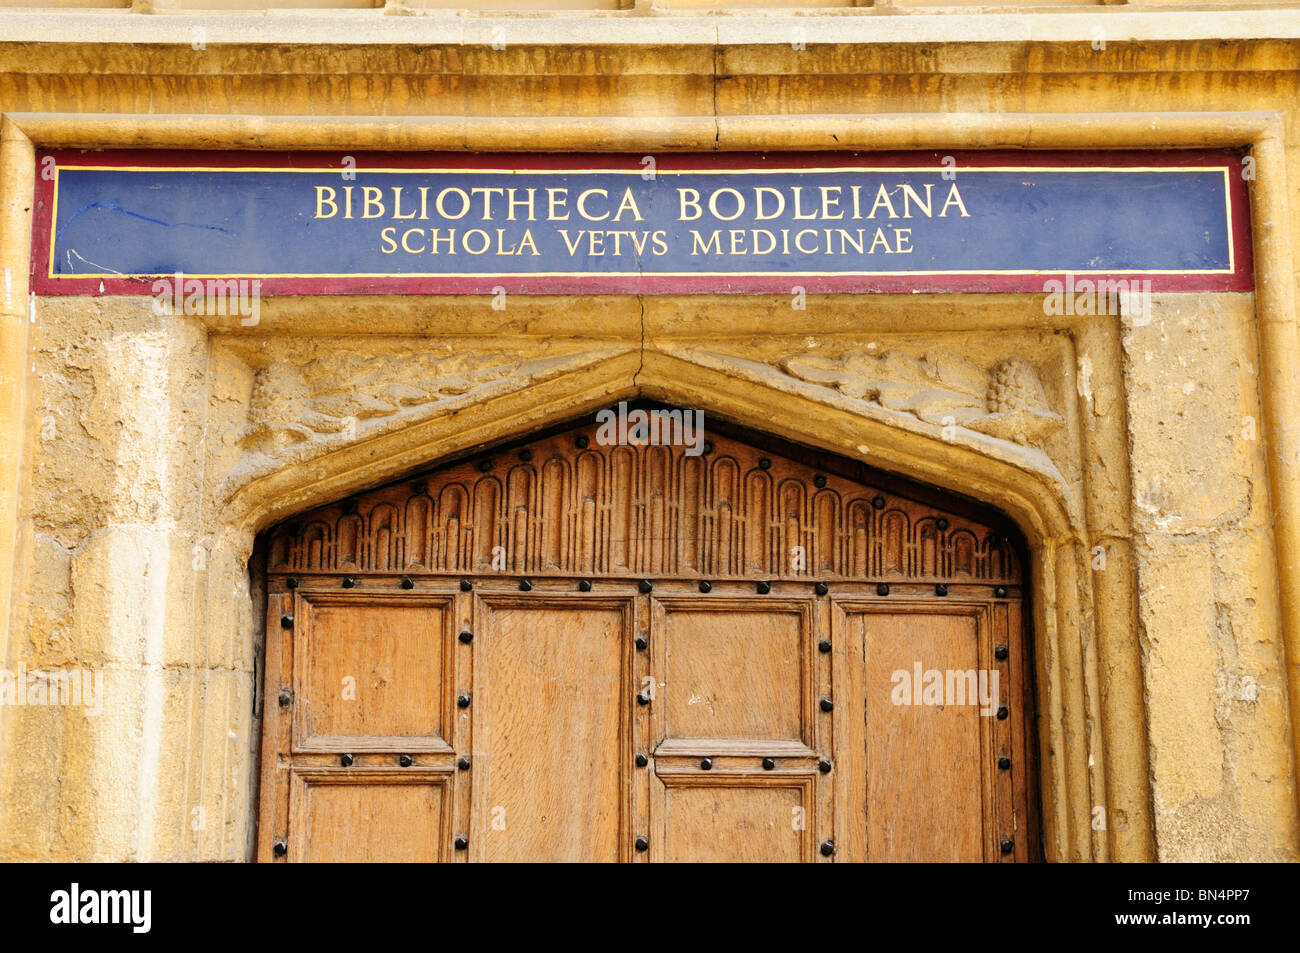 Bodleian Library School of Vetinary Medicine, Oxford, England, UK - Stock Image